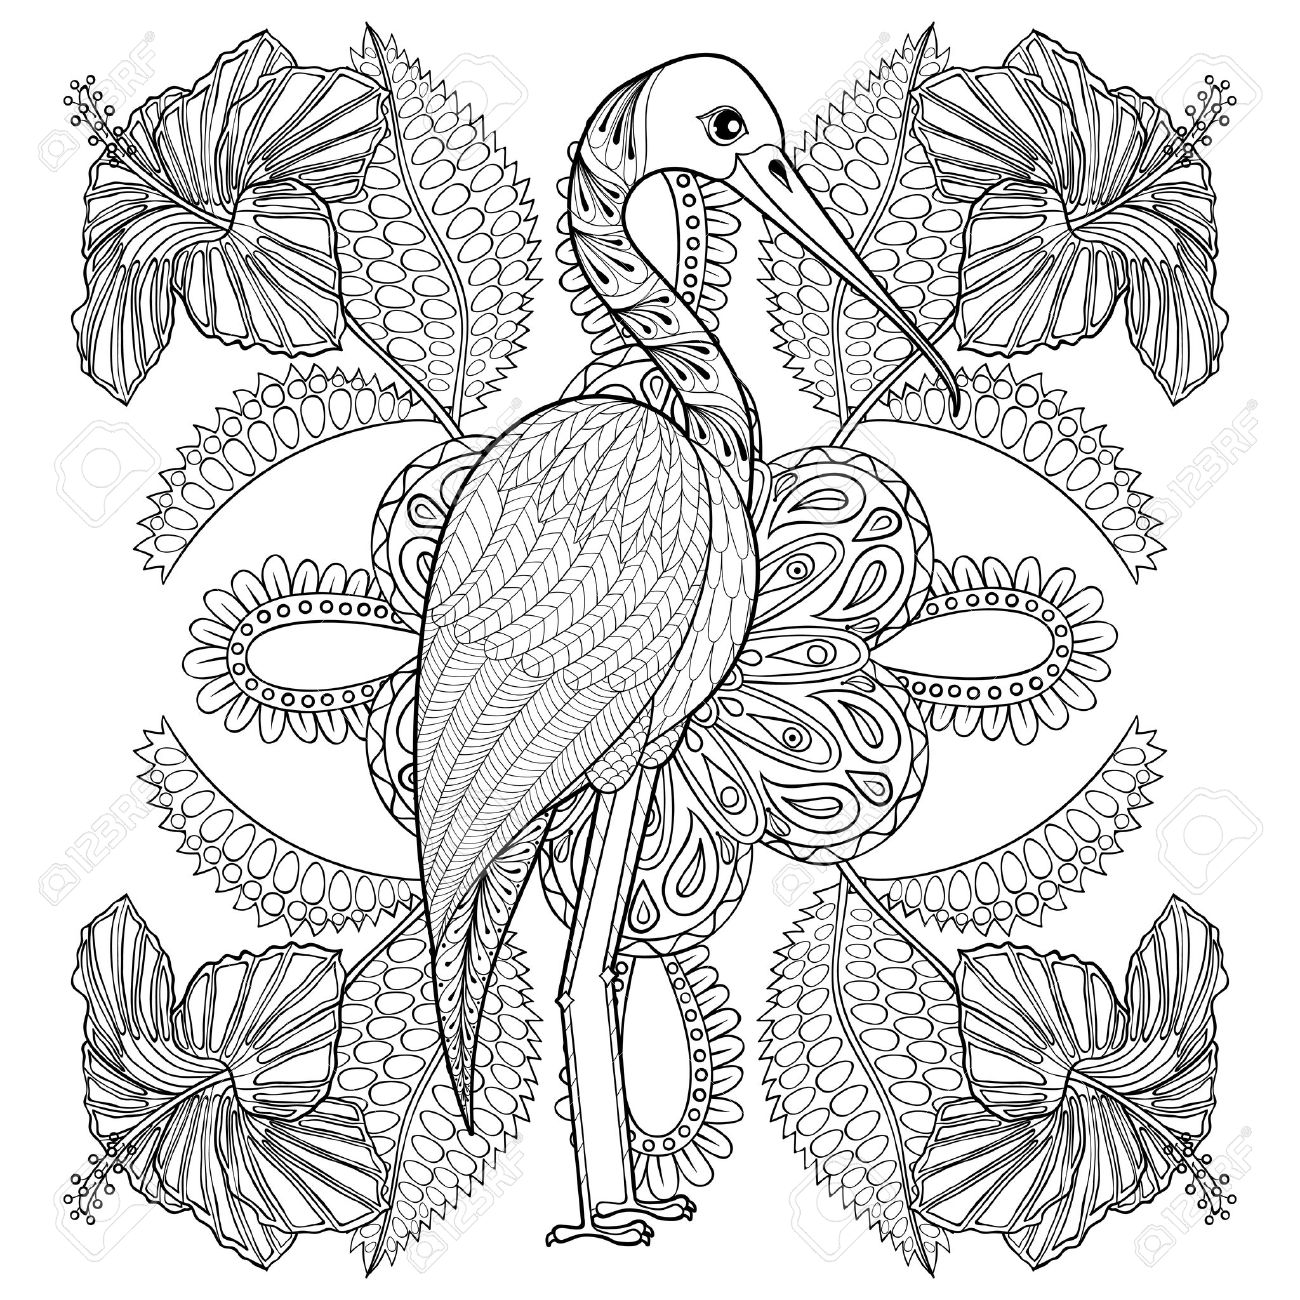 Coloring pages for adults zentangle - Zentangle Hand Drawn Stork In Hibiskus For Adult Antistress Coloring Pages Post Card T